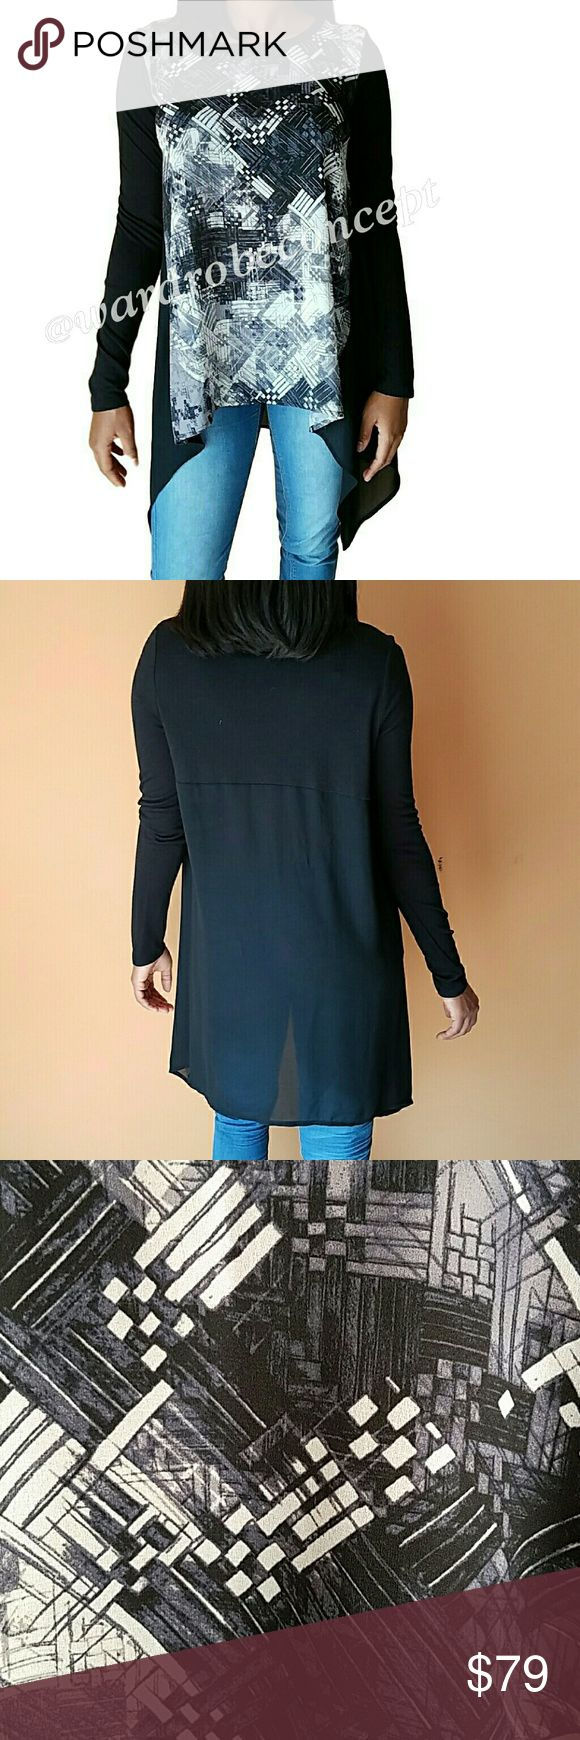 TROUVE Hi-low Long-sleeved Color-block Tunic Top EXCELLENT GENTLY LOVED CONDITION! Soft and beautiful color-block long-sleeved tunic. Hi-low design with crew neck. Measurements available upon request. No rips, tears, or stains. Please use the offer button for all offers. Feel free to bundle for a great discount! No trades, ladies. Trouve Tops Tunics